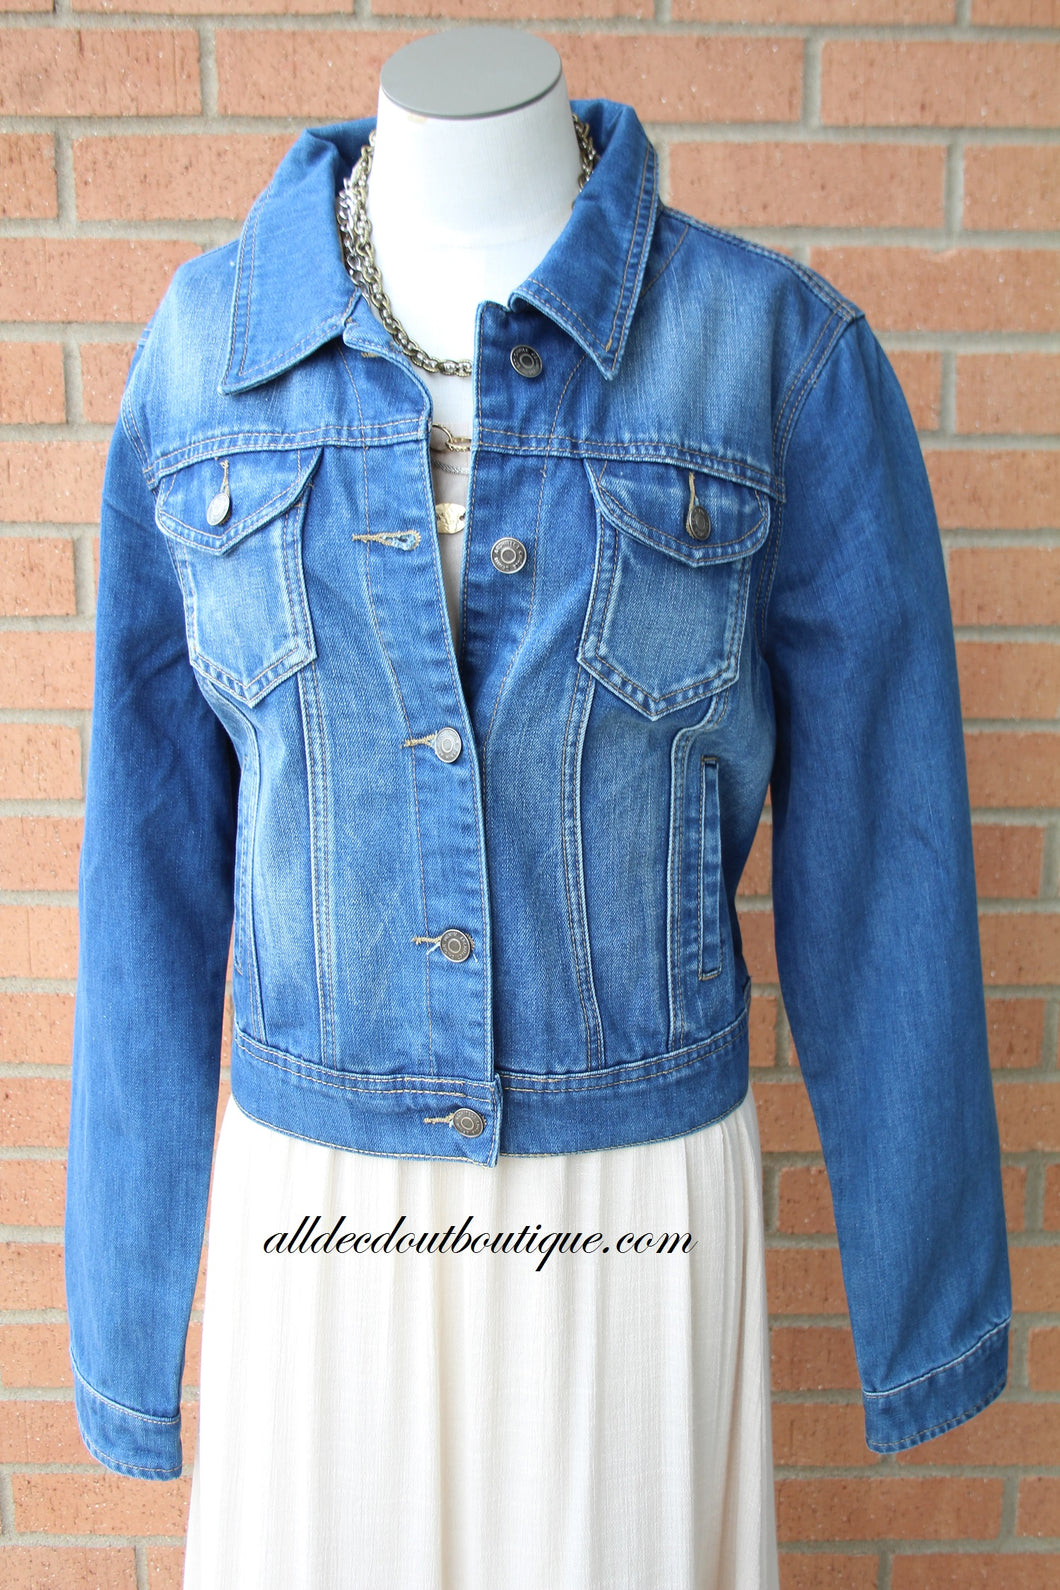 Turquoise Haven | Medium Wash Denim Jacket